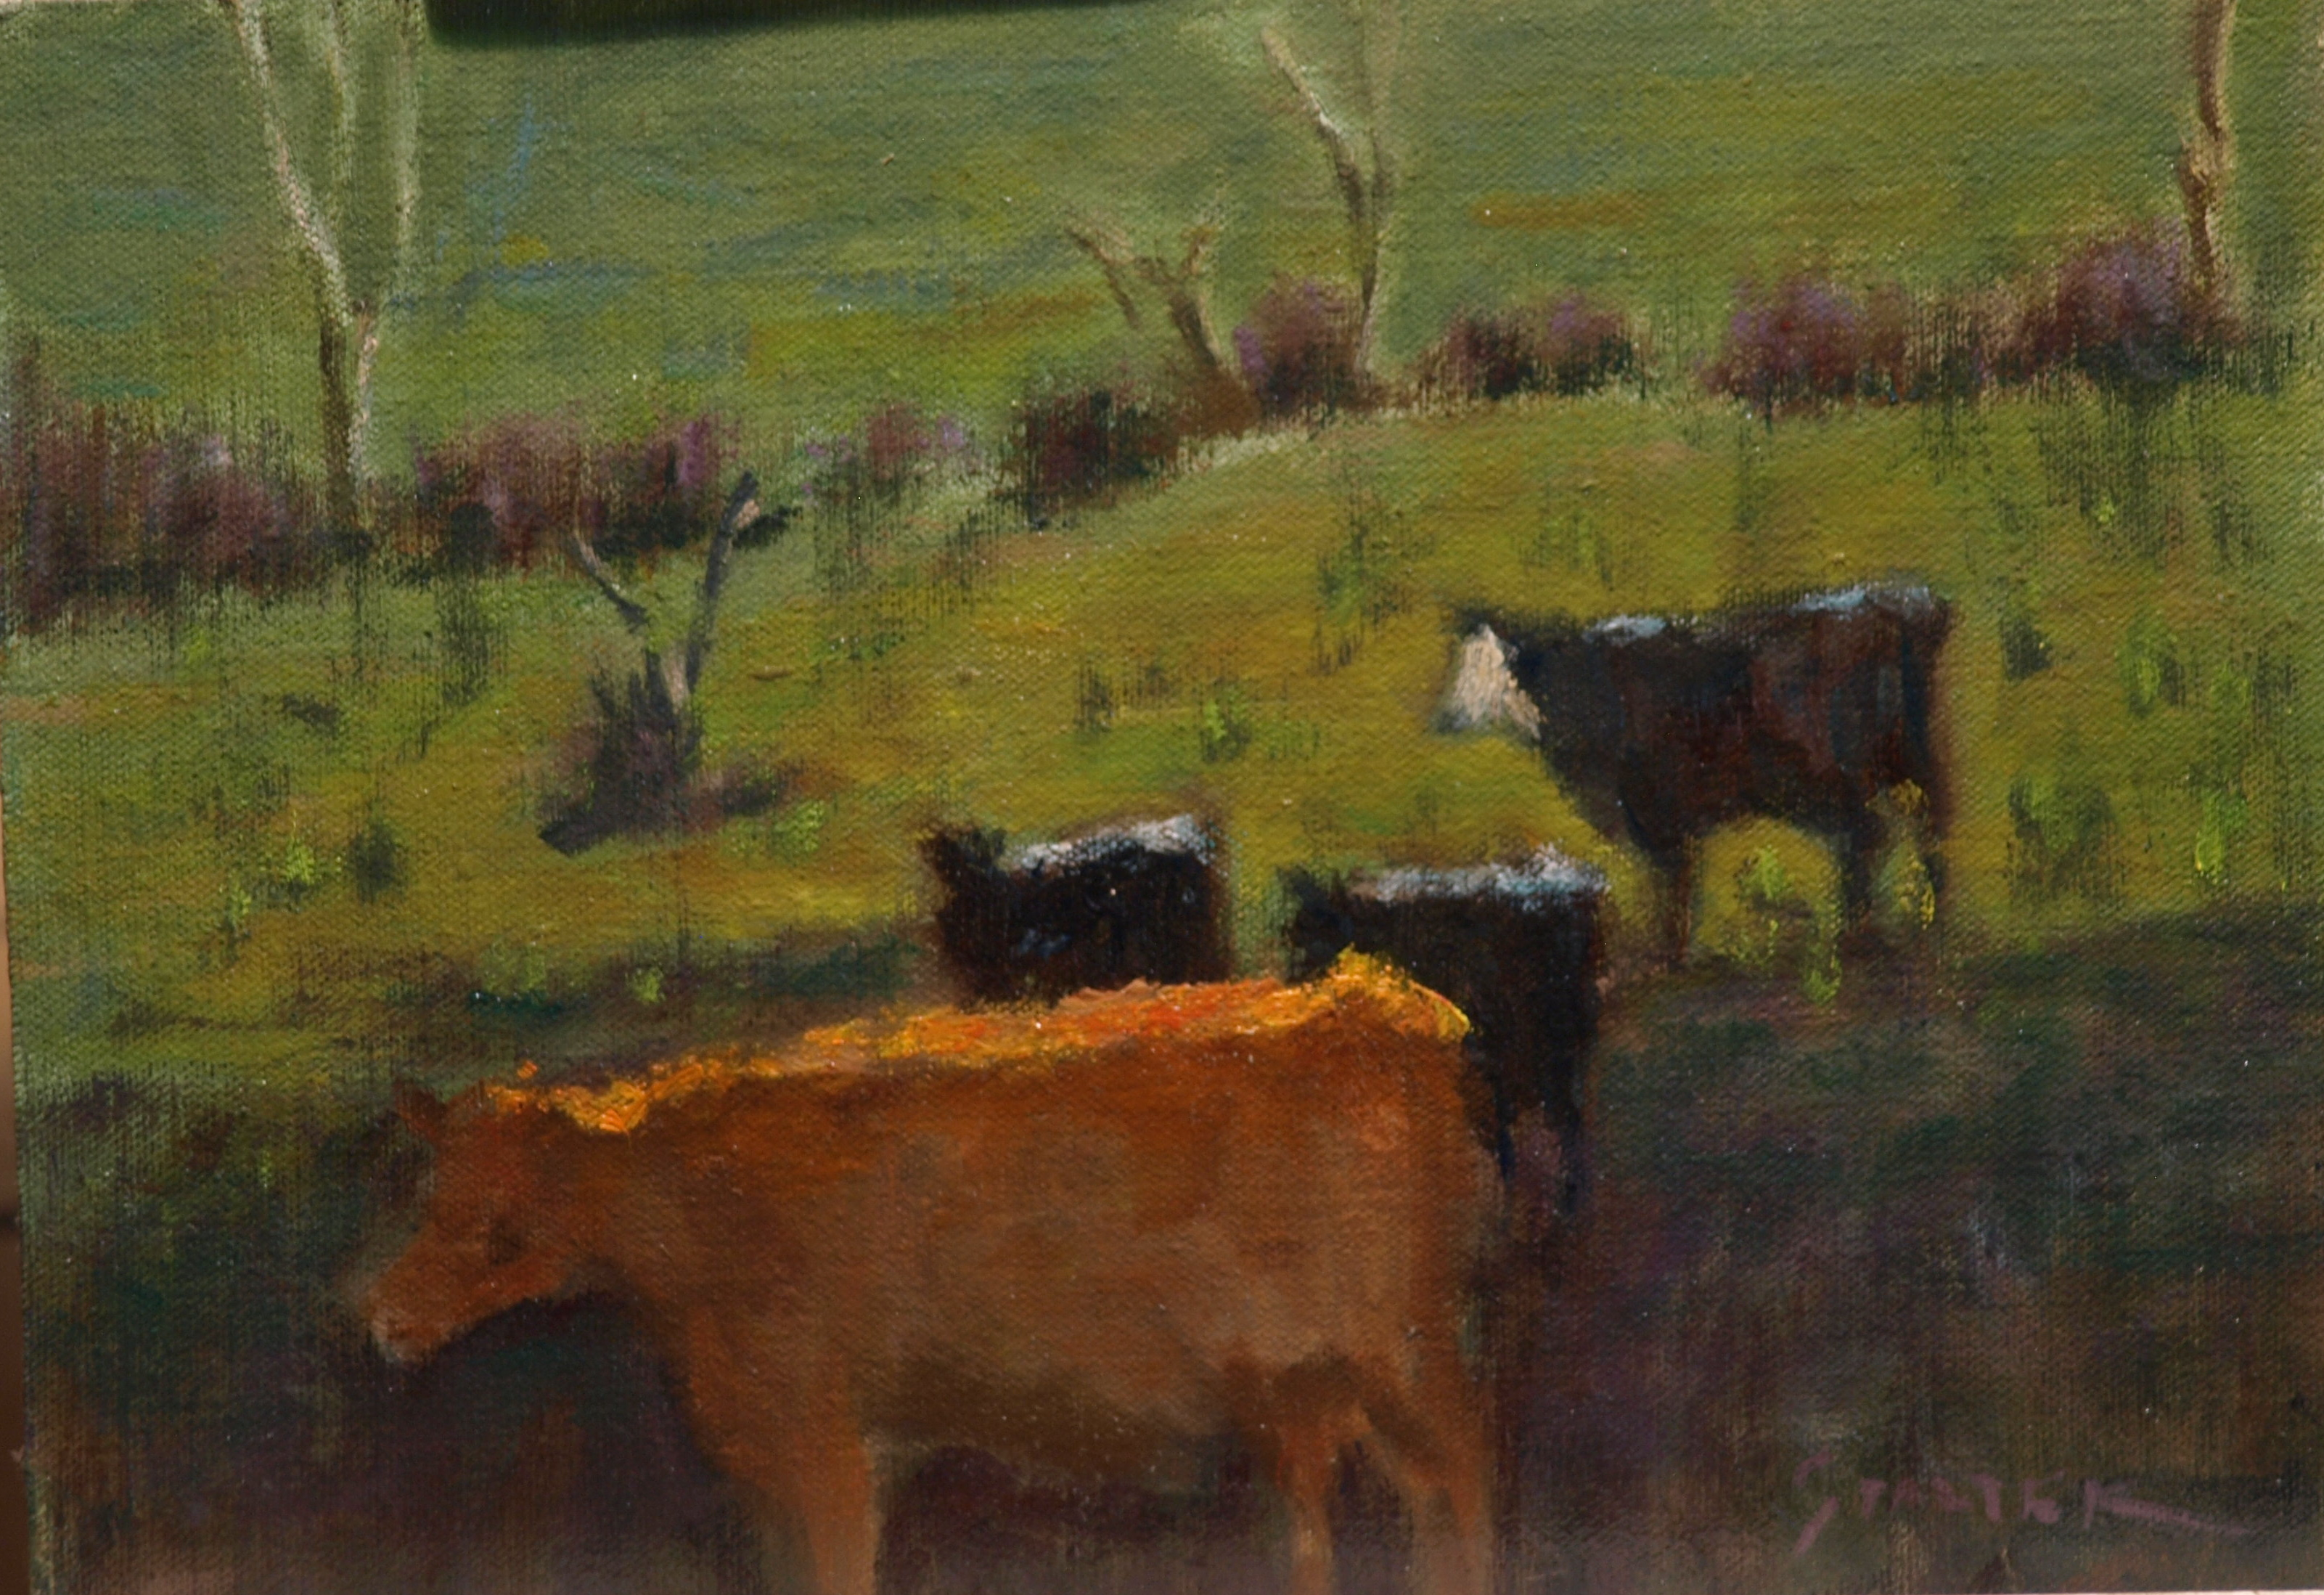 Local Cows, Oil on Canvas on Panel, 9 x 12 Inches, by Richard Stalter, $225